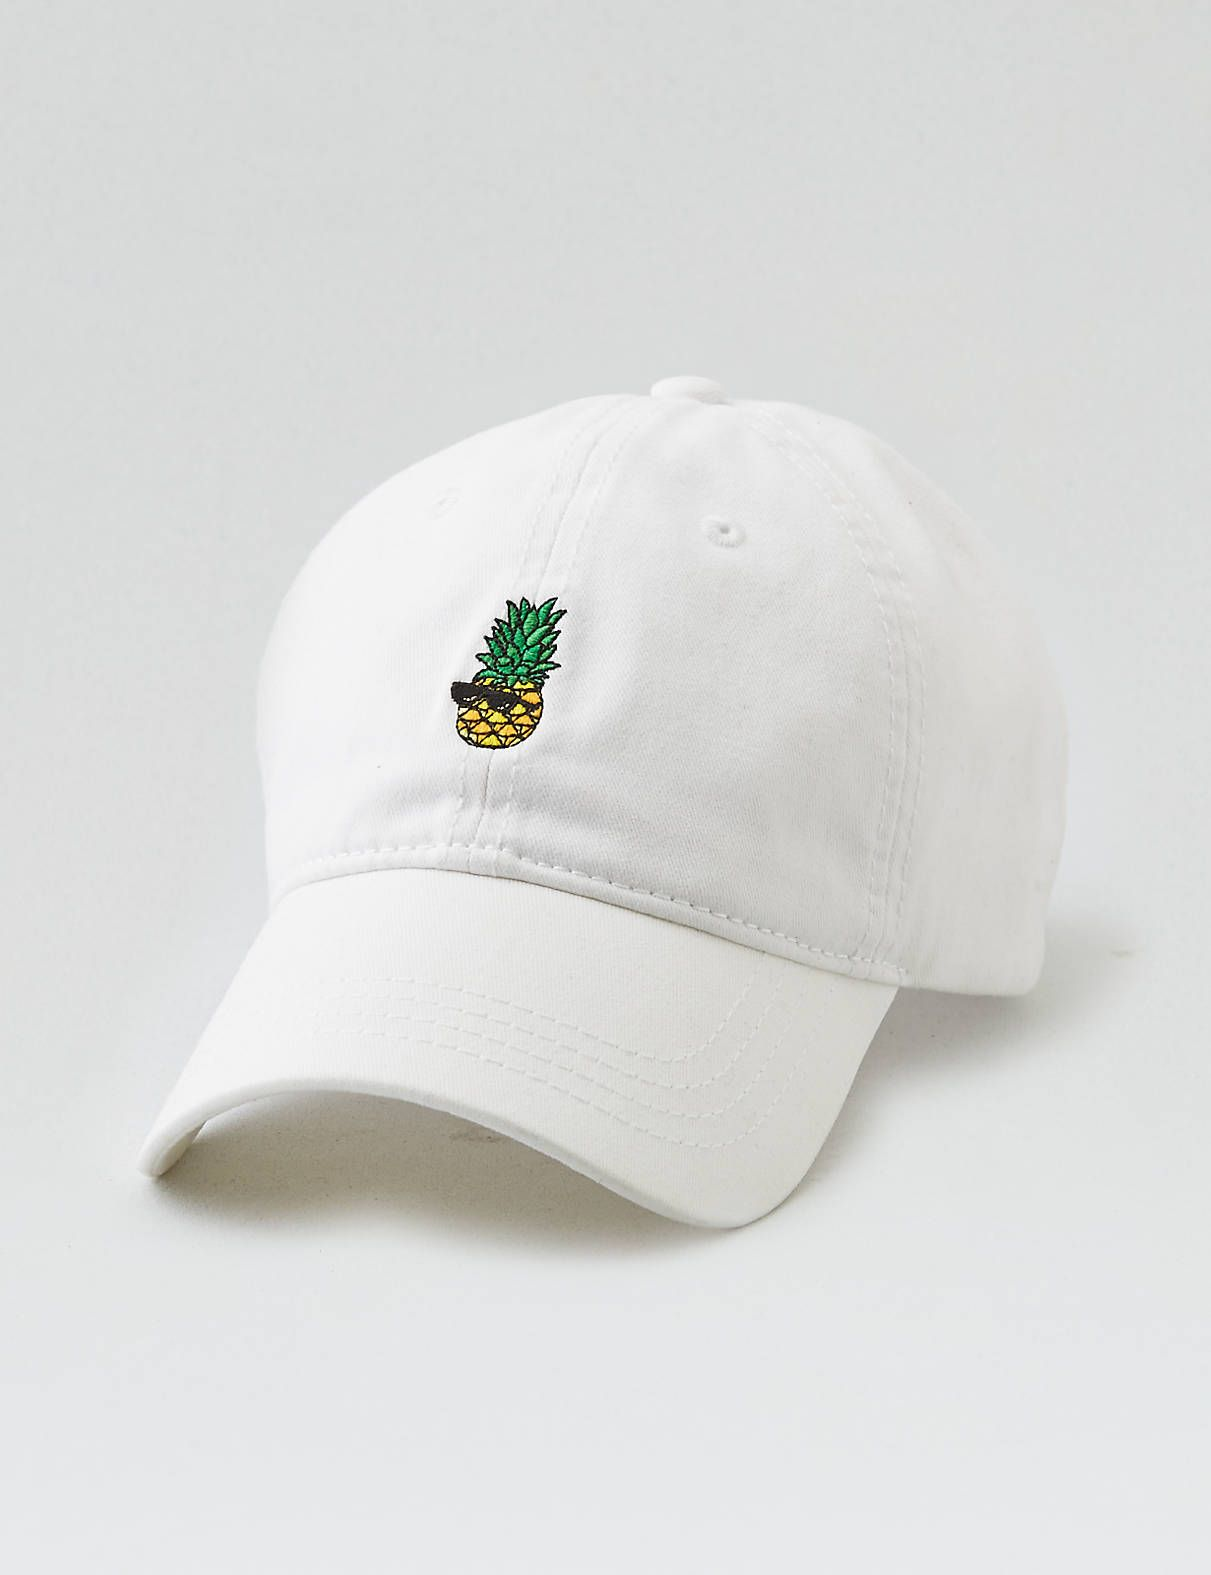 aeo embroidered dad hat    sunglasses pineapple